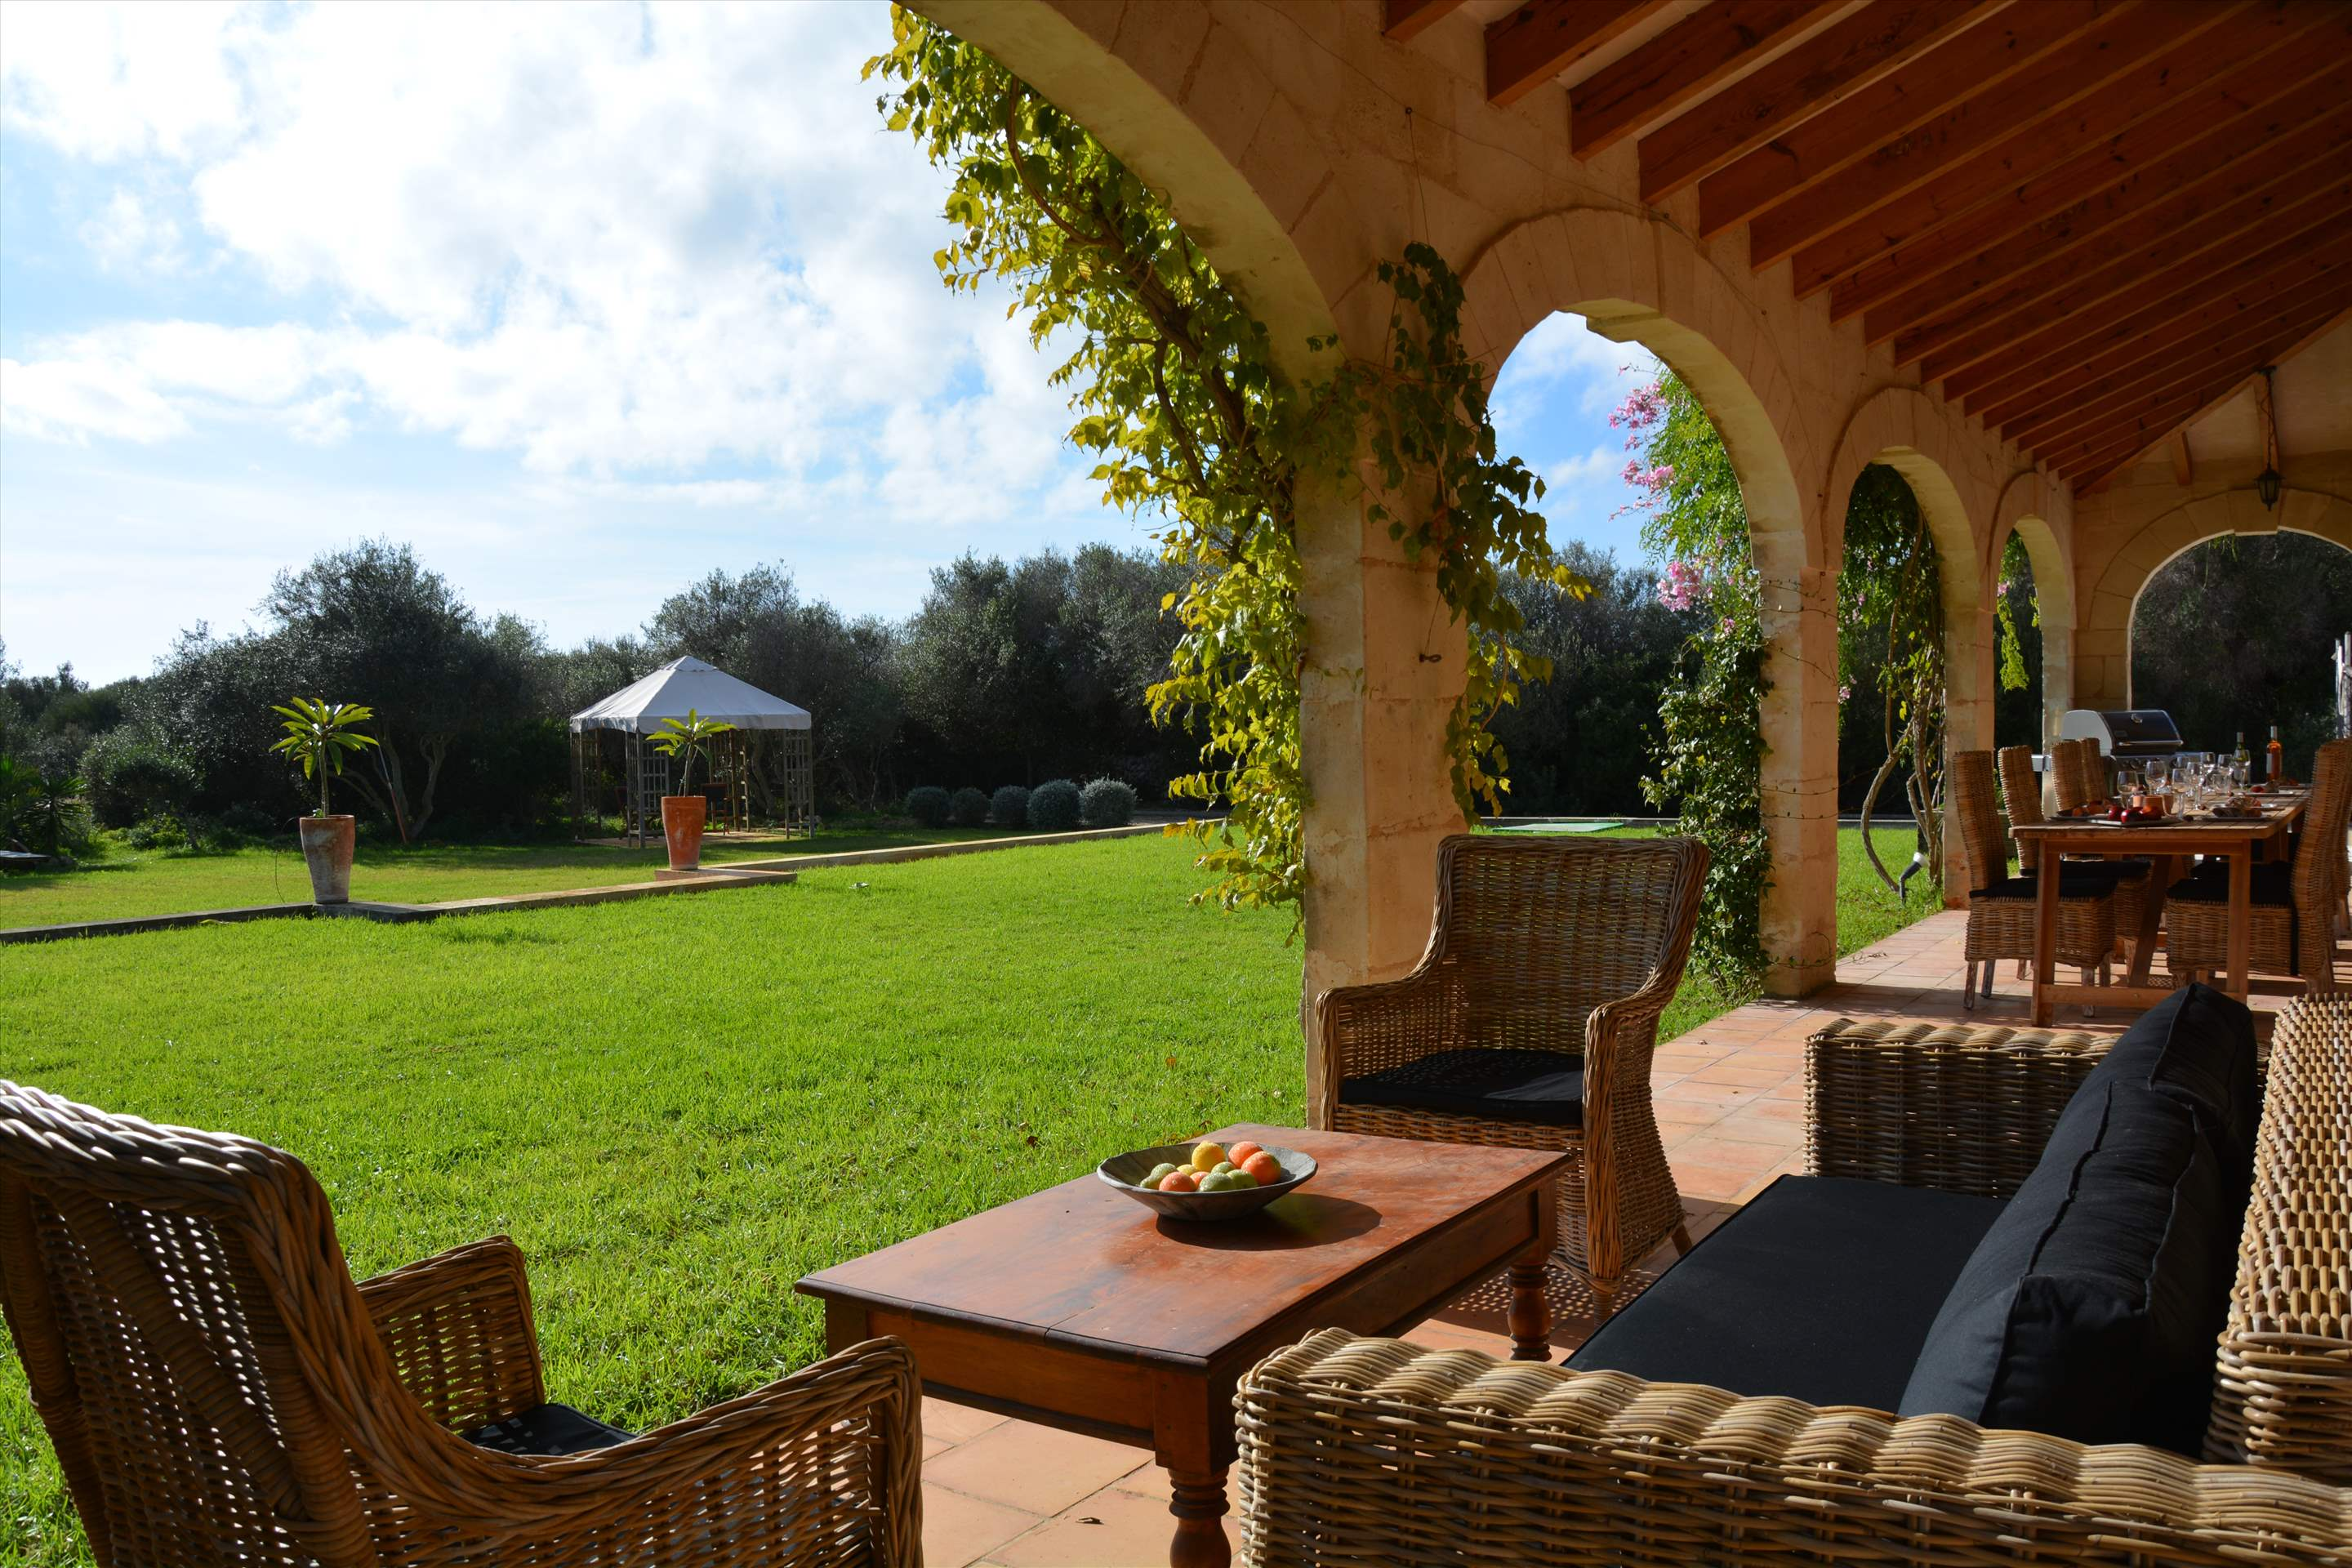 Les Arcs, 5 bedroom villa in Mahon, San Luis & South East, Menorca Photo #3